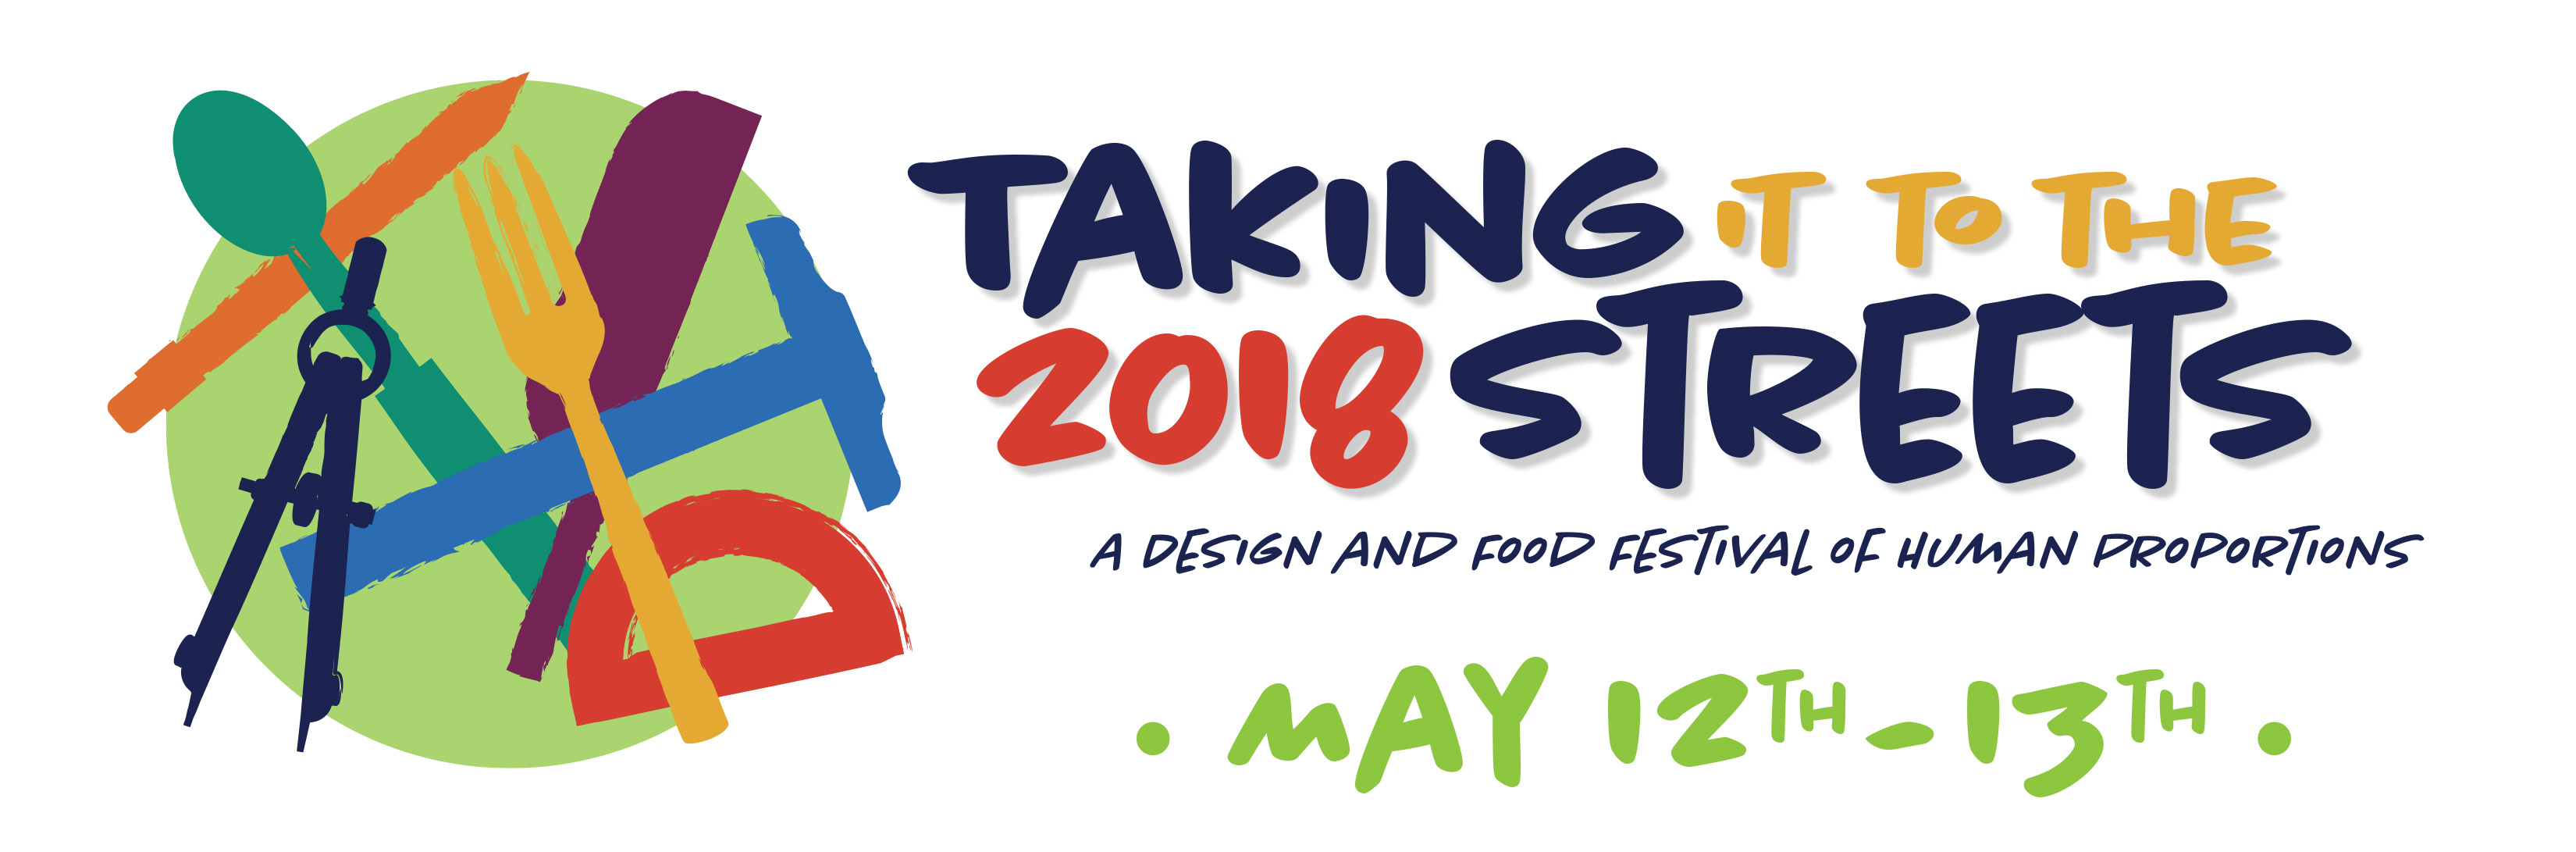 Taking it to the Streets logo